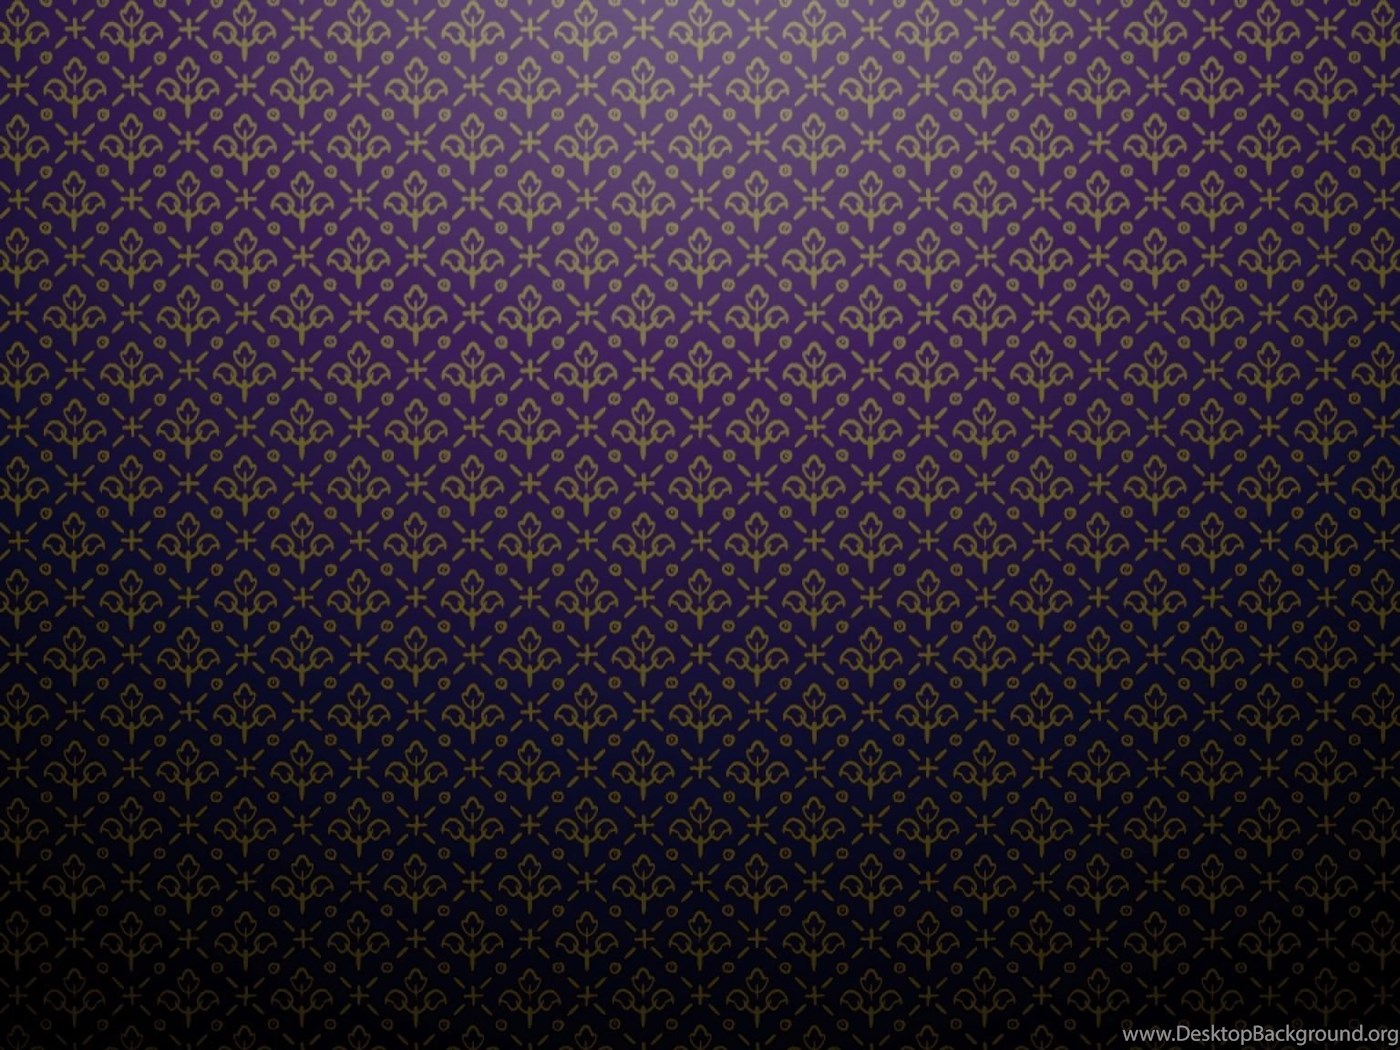 Download Wallpapers 2048x1152 Purple Dark Patterns Shadows HD